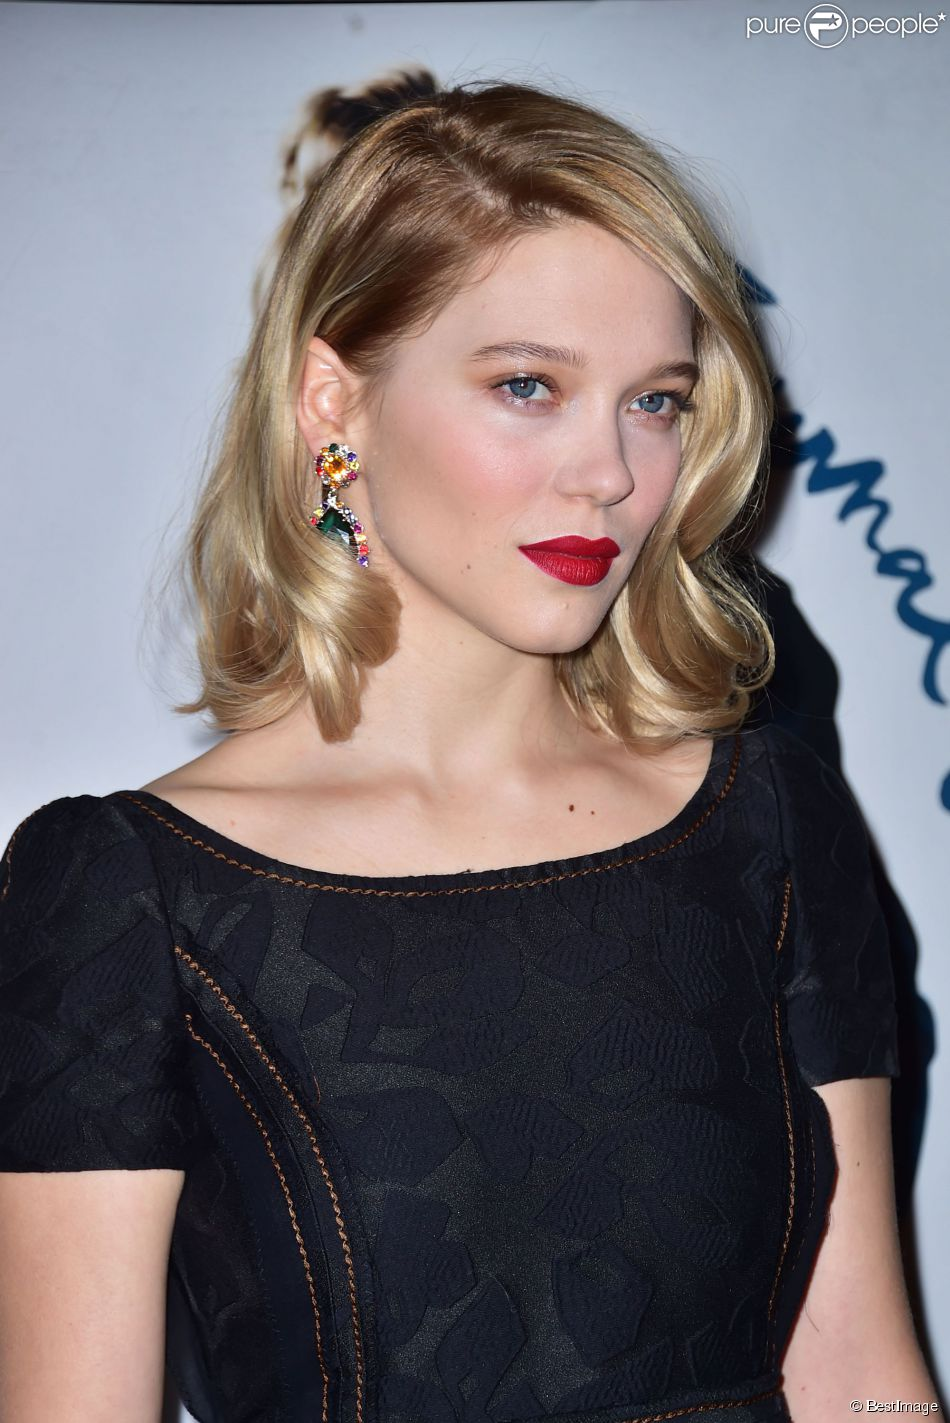 l a seydoux un bel ange sur tapis rouge qui peut 39 39 aussi tre moche 39 39 purepeople. Black Bedroom Furniture Sets. Home Design Ideas